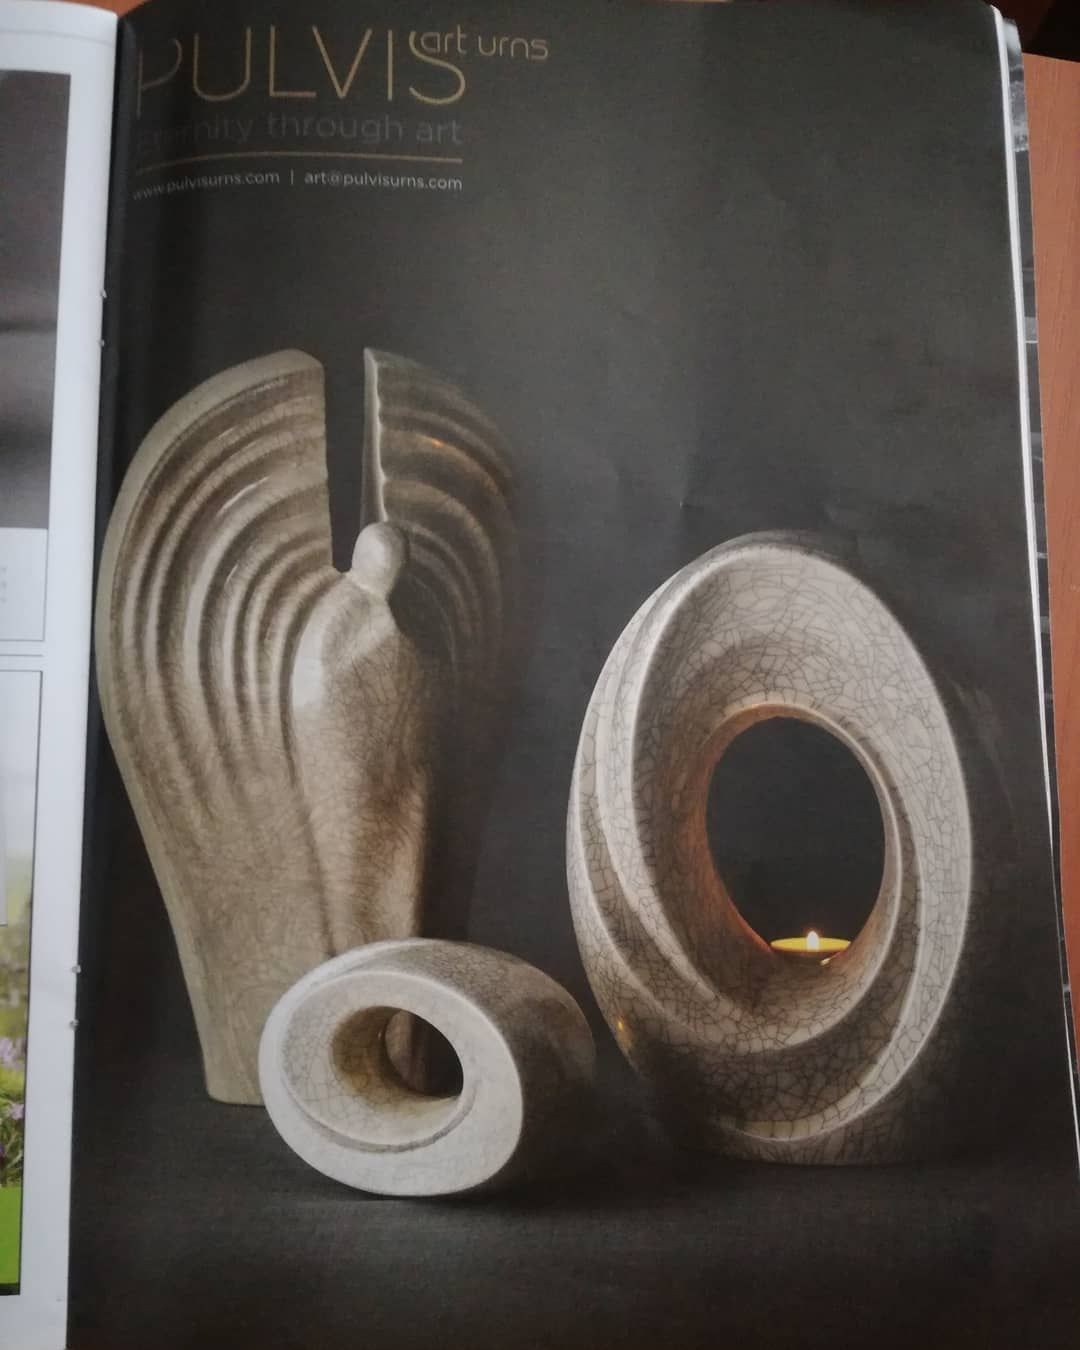 Pin auf Ceramic Art Urns For Human Ashes By Pulvis